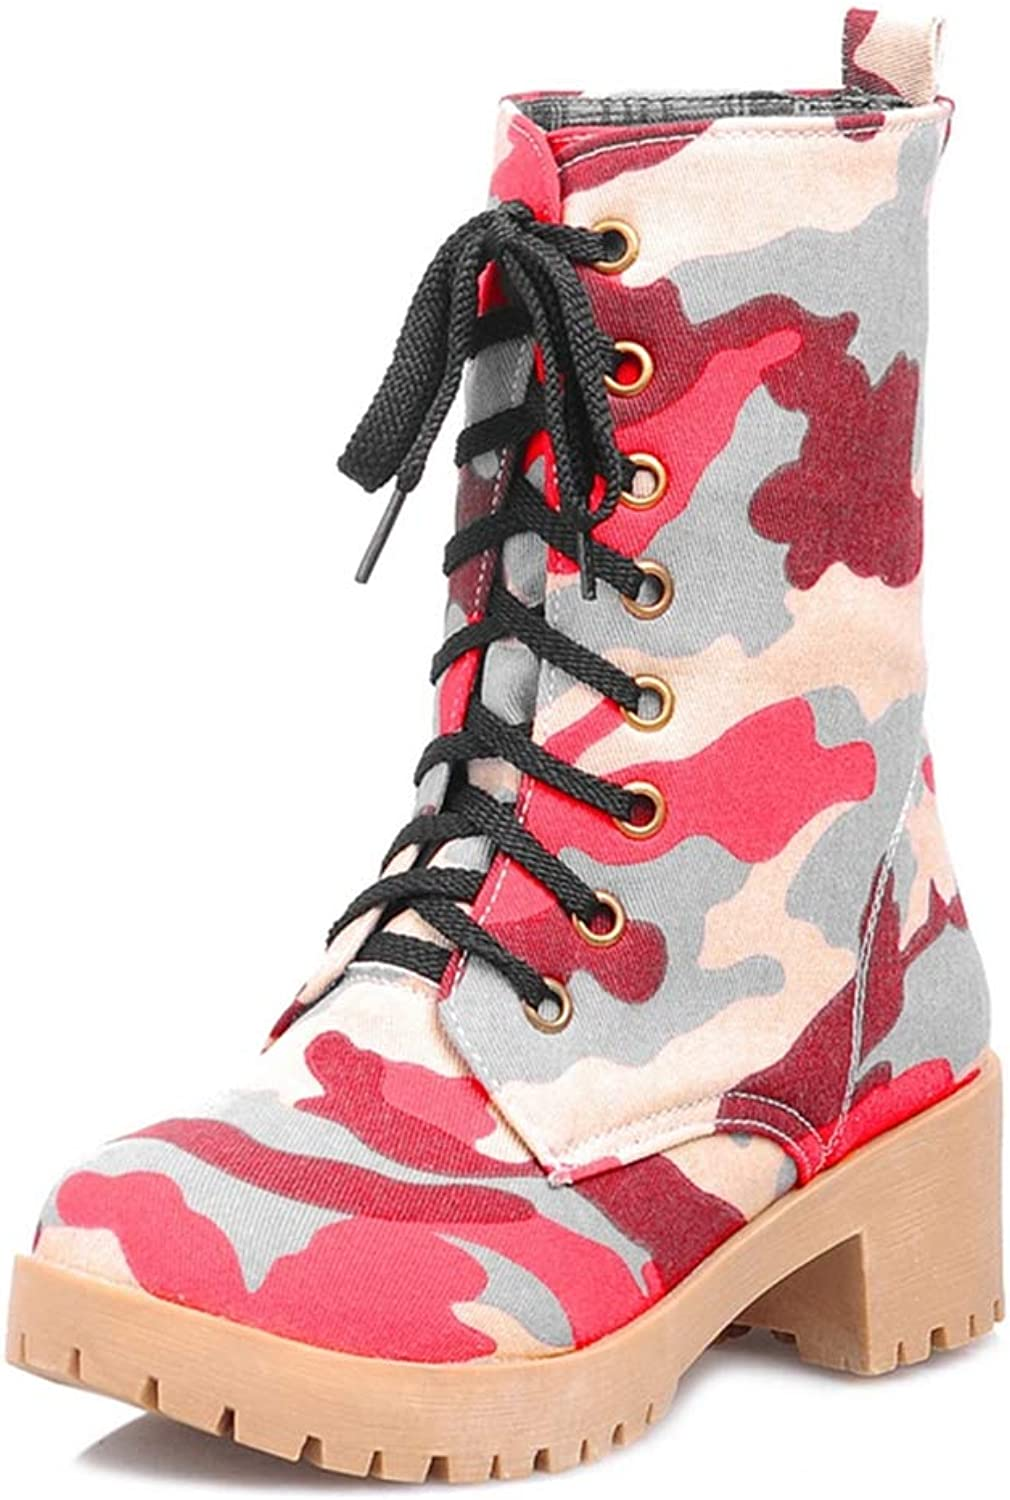 GIY Womens Lace Up Low Heels Ankle Boots Camouflage Paltform Round Toe Winter Mid Calf Boots Casual Ladies shoes